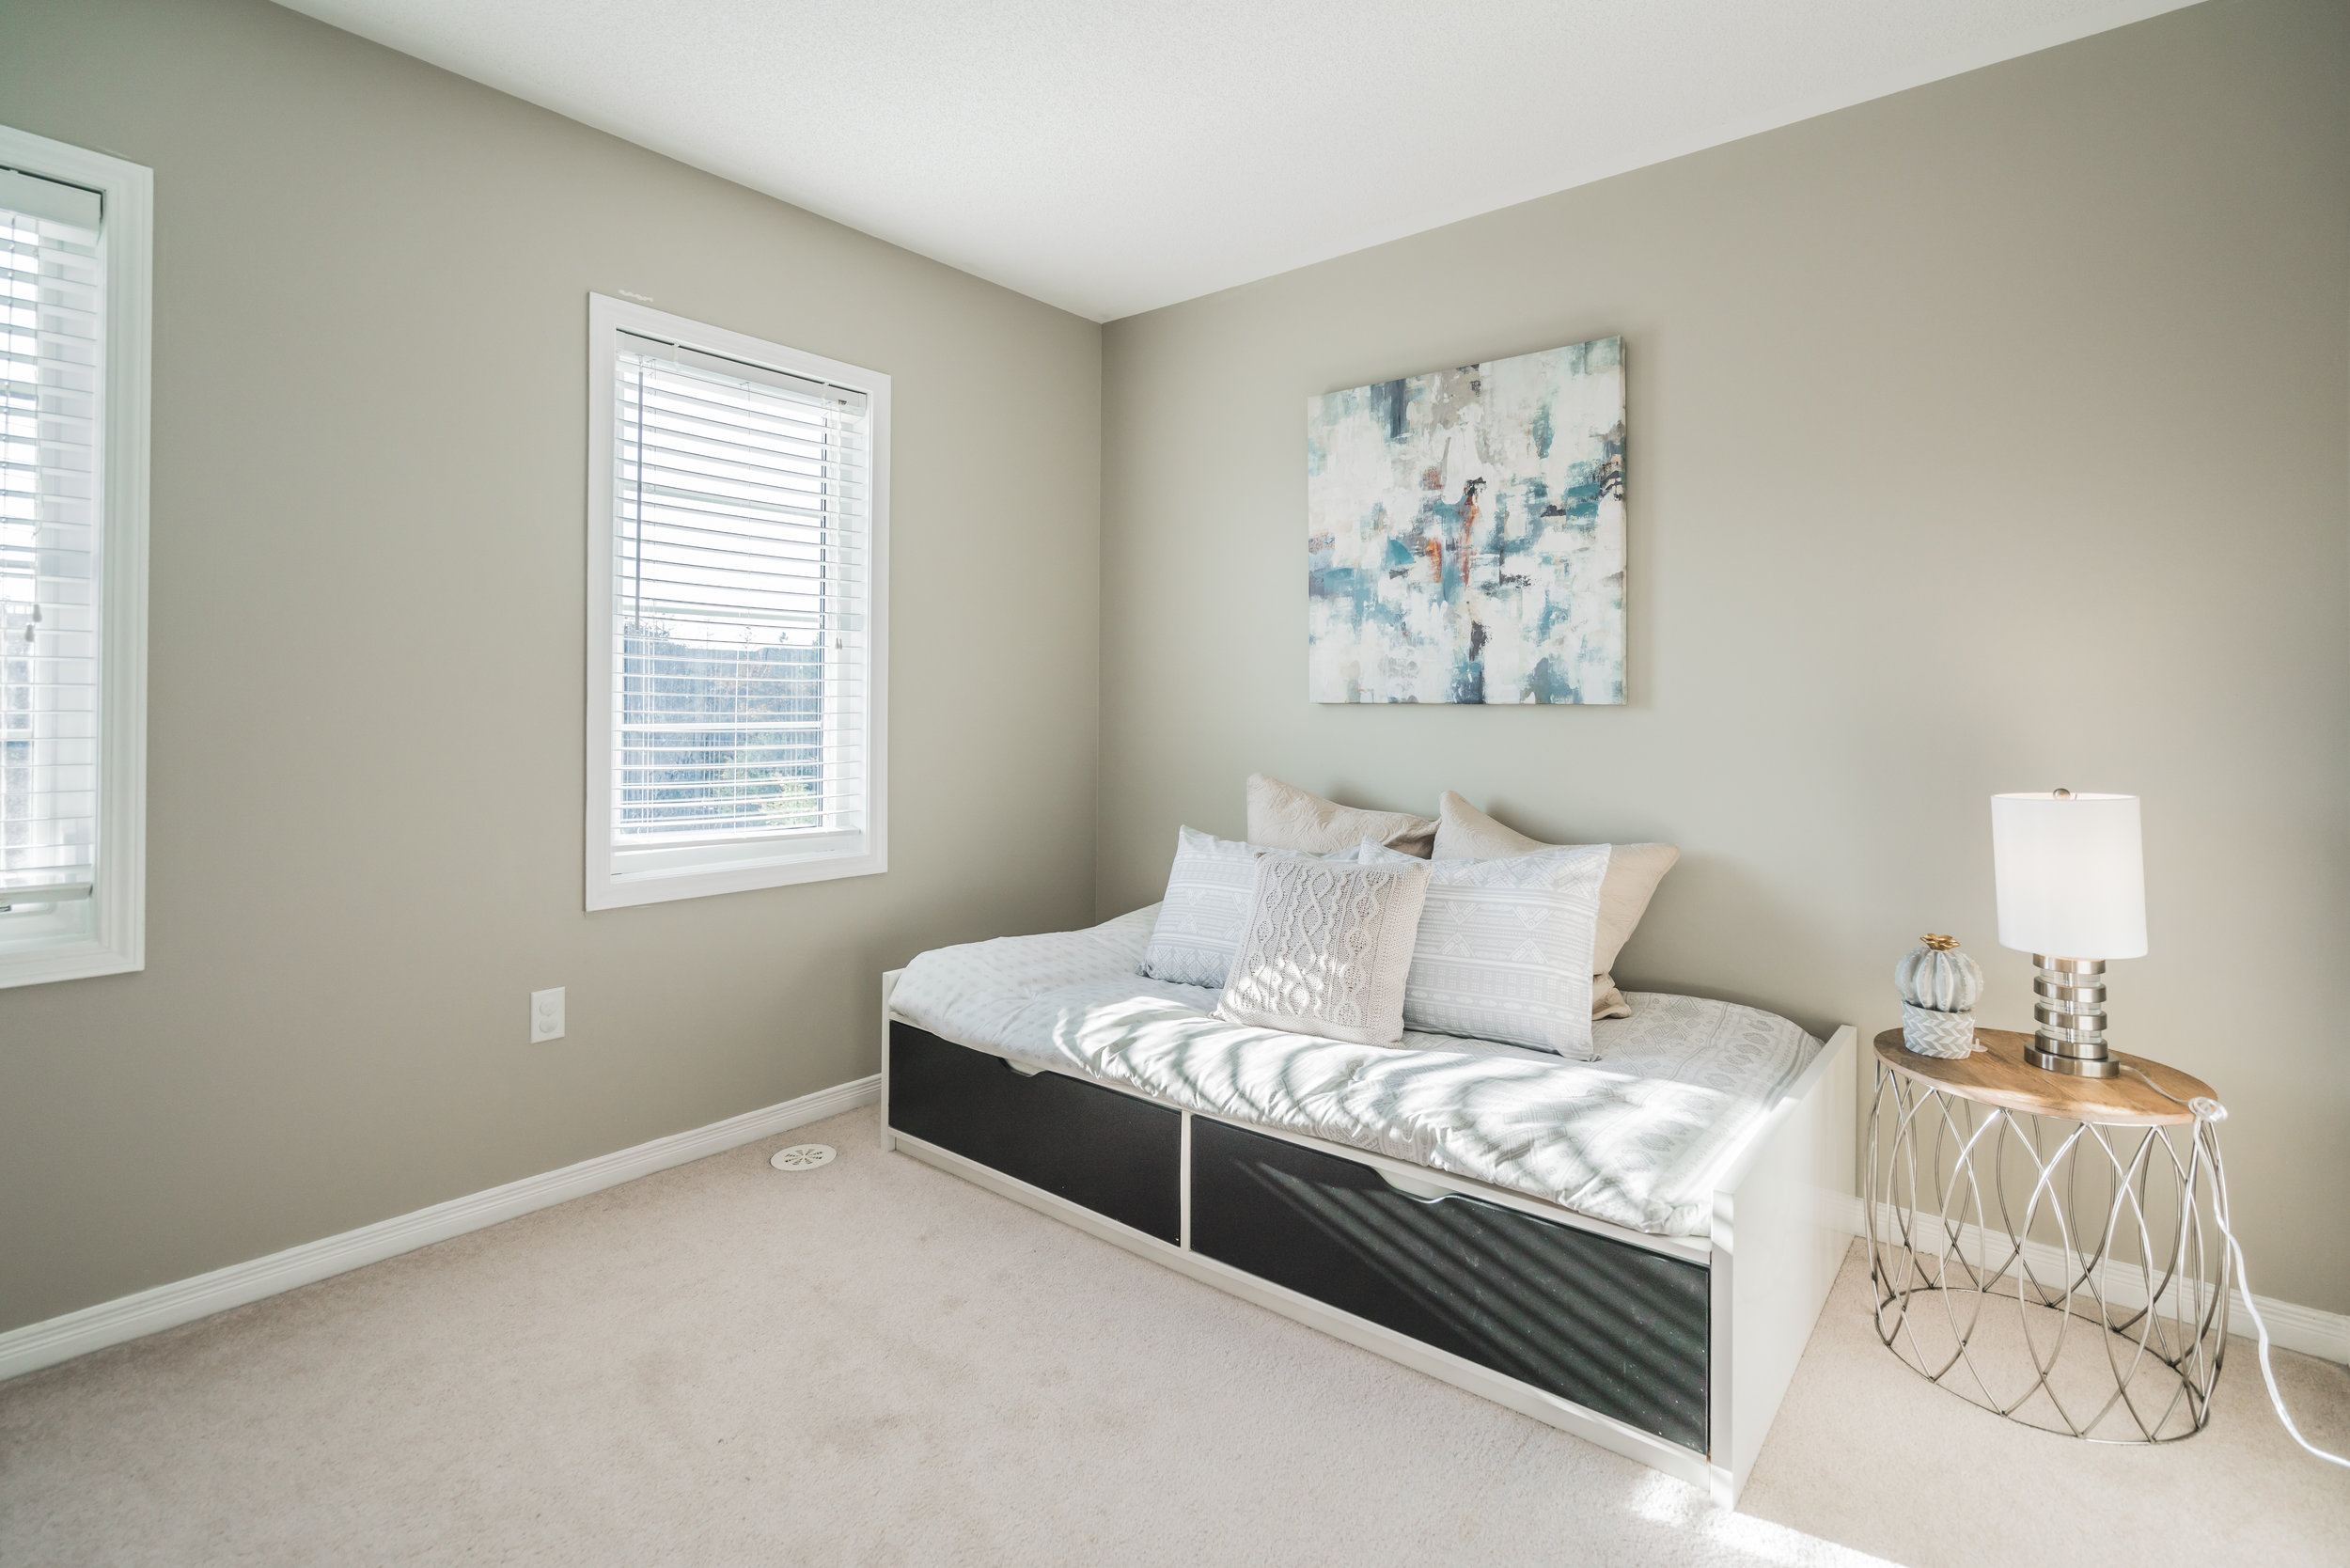 Beehive Markham occupied home staging home stager | Classy Glam Staging 9